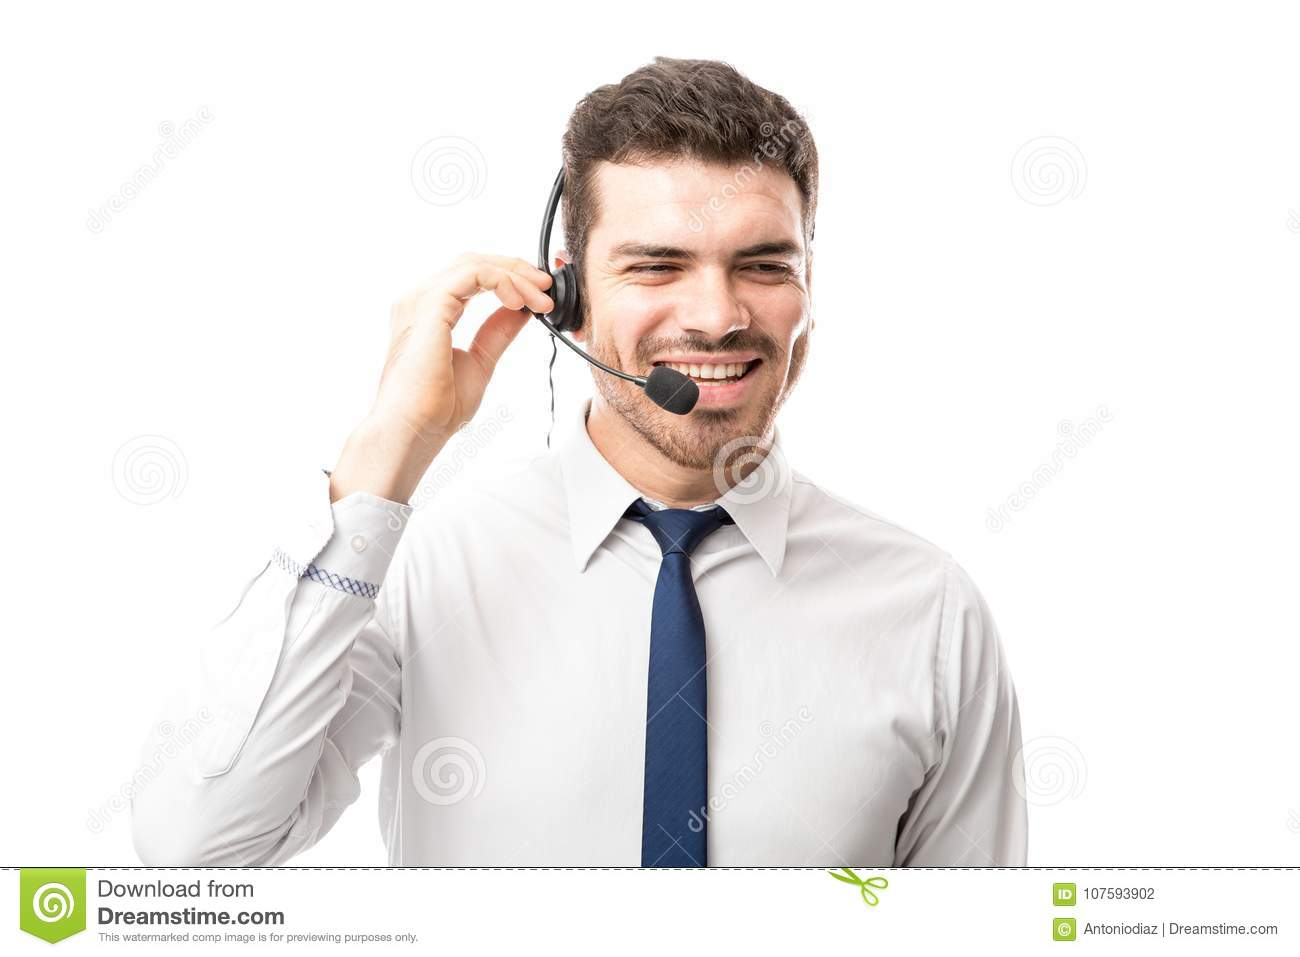 Sales Rep Smiling Over A Phone Call Stock Photo Image of executive